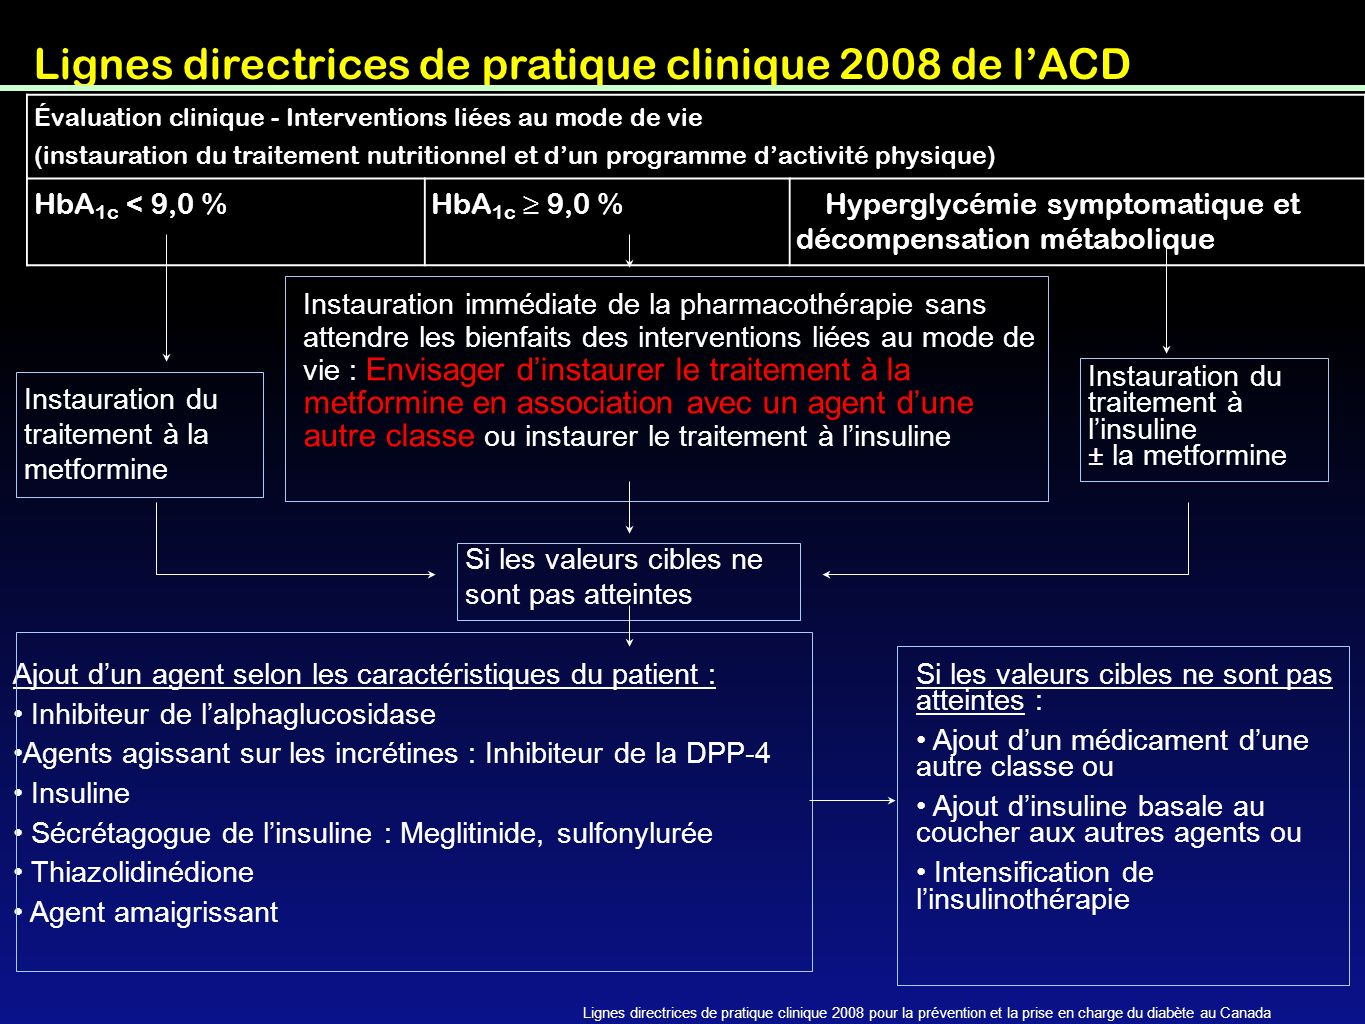 Pharmacokenetics of Dipeptidyl peptidase-4 inhibitors Hocher/Reichetzeder/Alter: Renal & Cardiac effects o DDP4 Ref: KidneyBlood Press Res 2012:36:65-84 European label advise physicians the need for dose adjustment with saxagliptin for patients use drug metabolized by CYT 450 3A4/5